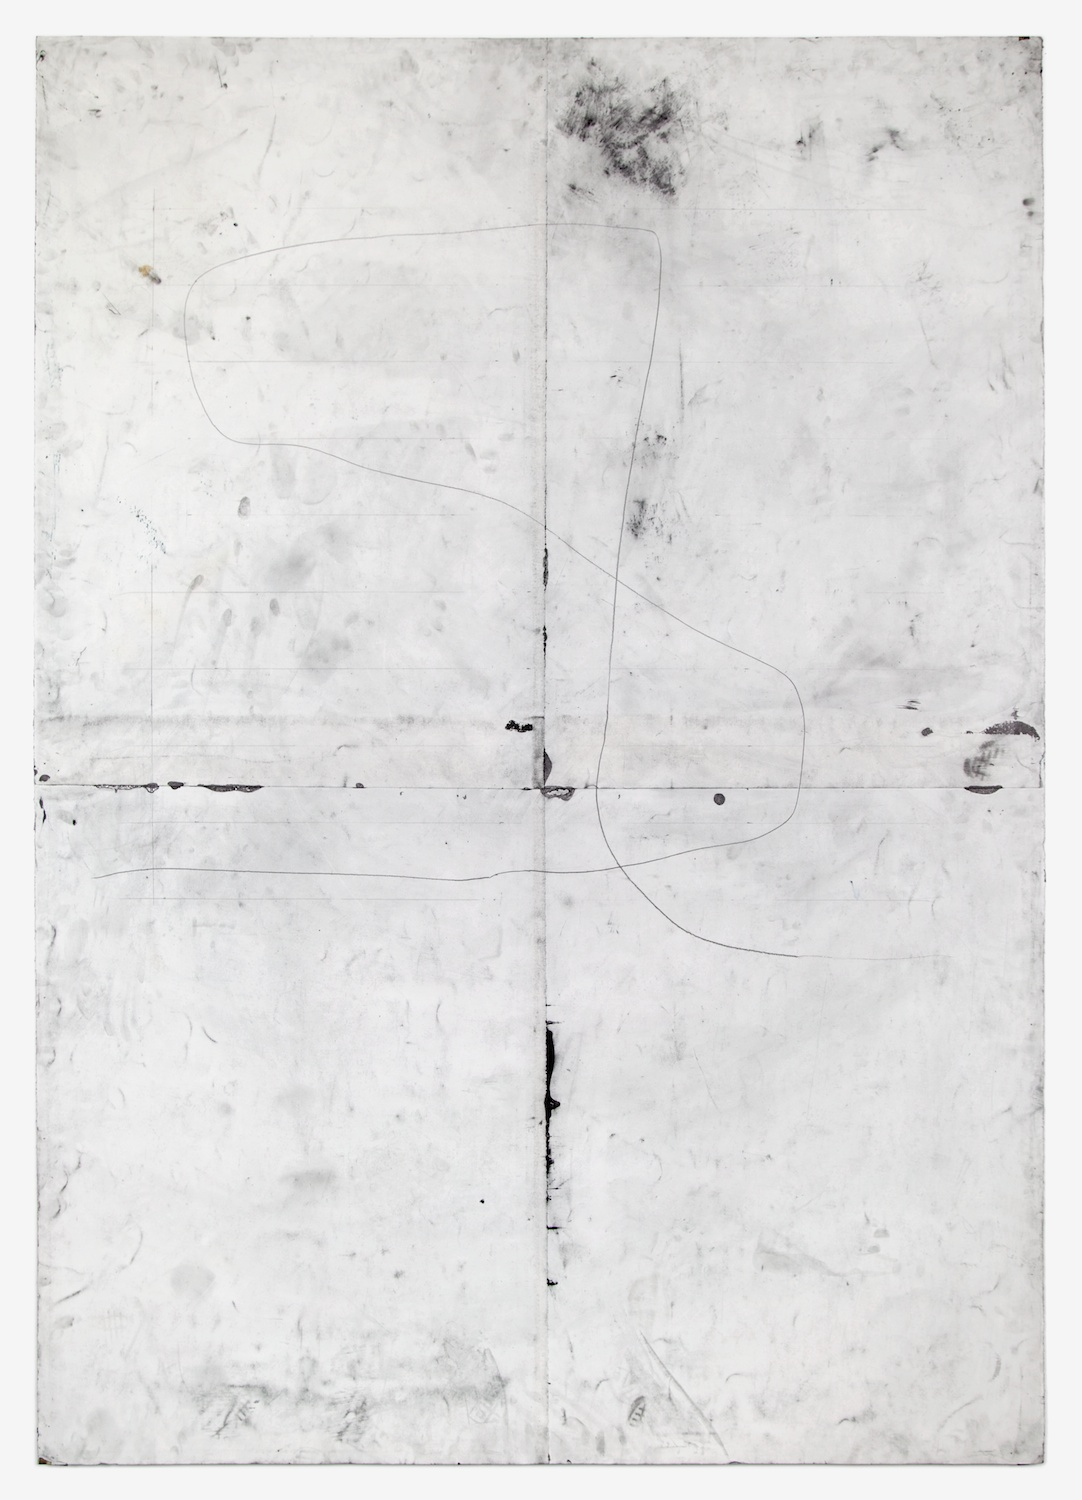 Tony Lewis  --------  2012 Pencil and graphite powder on paper 84h x 60w in TL010